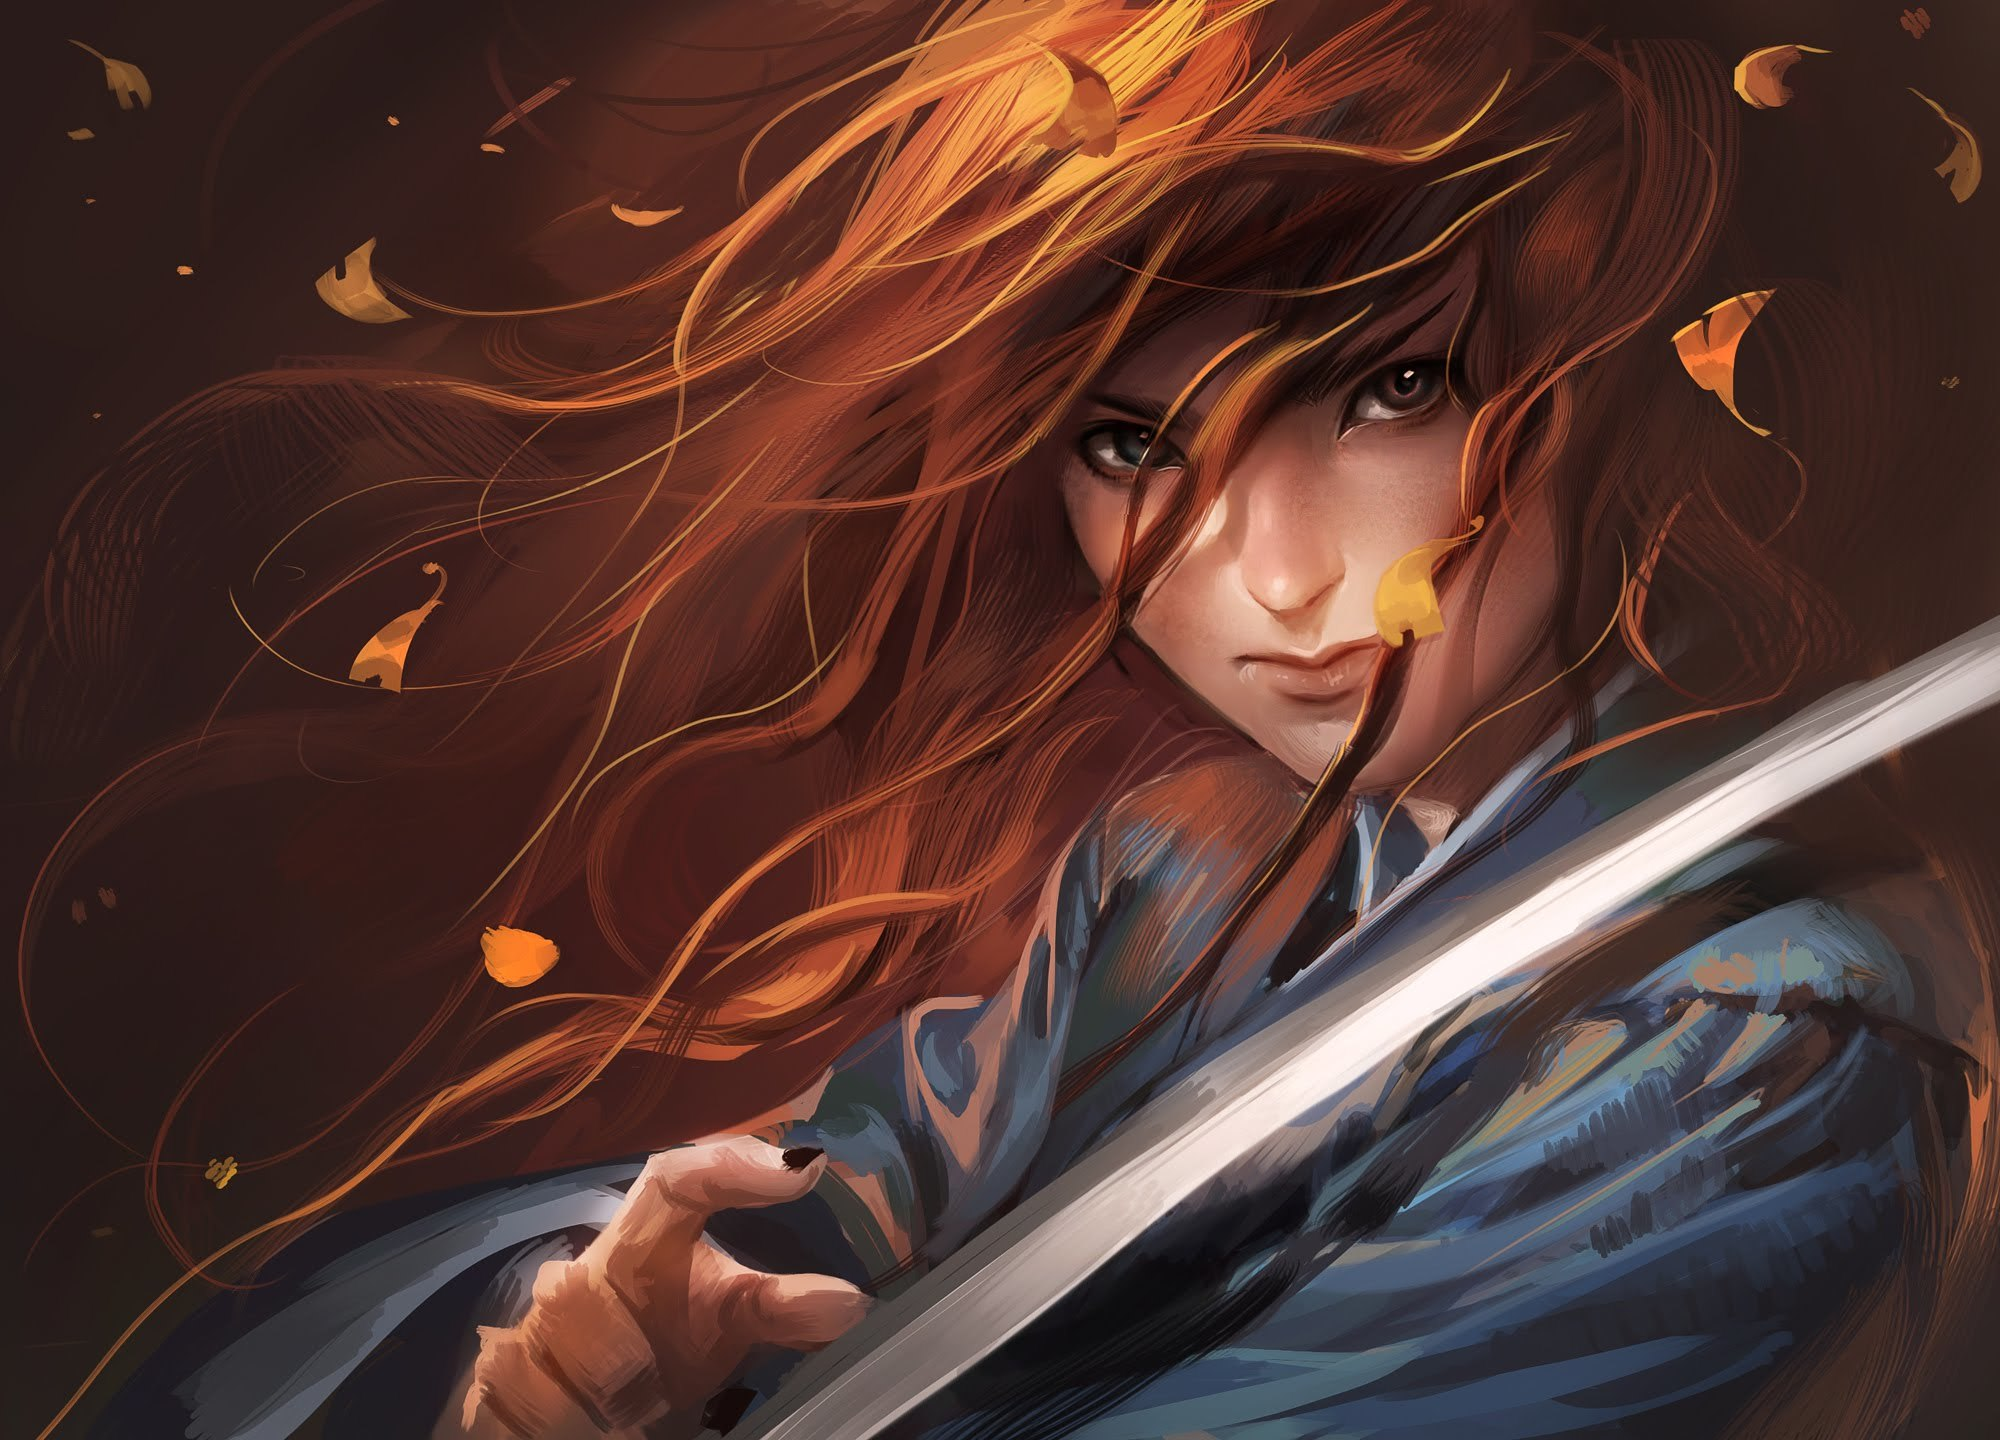 Image: Girl, hair, leaves, wind, sword, katana, look, red hair, art